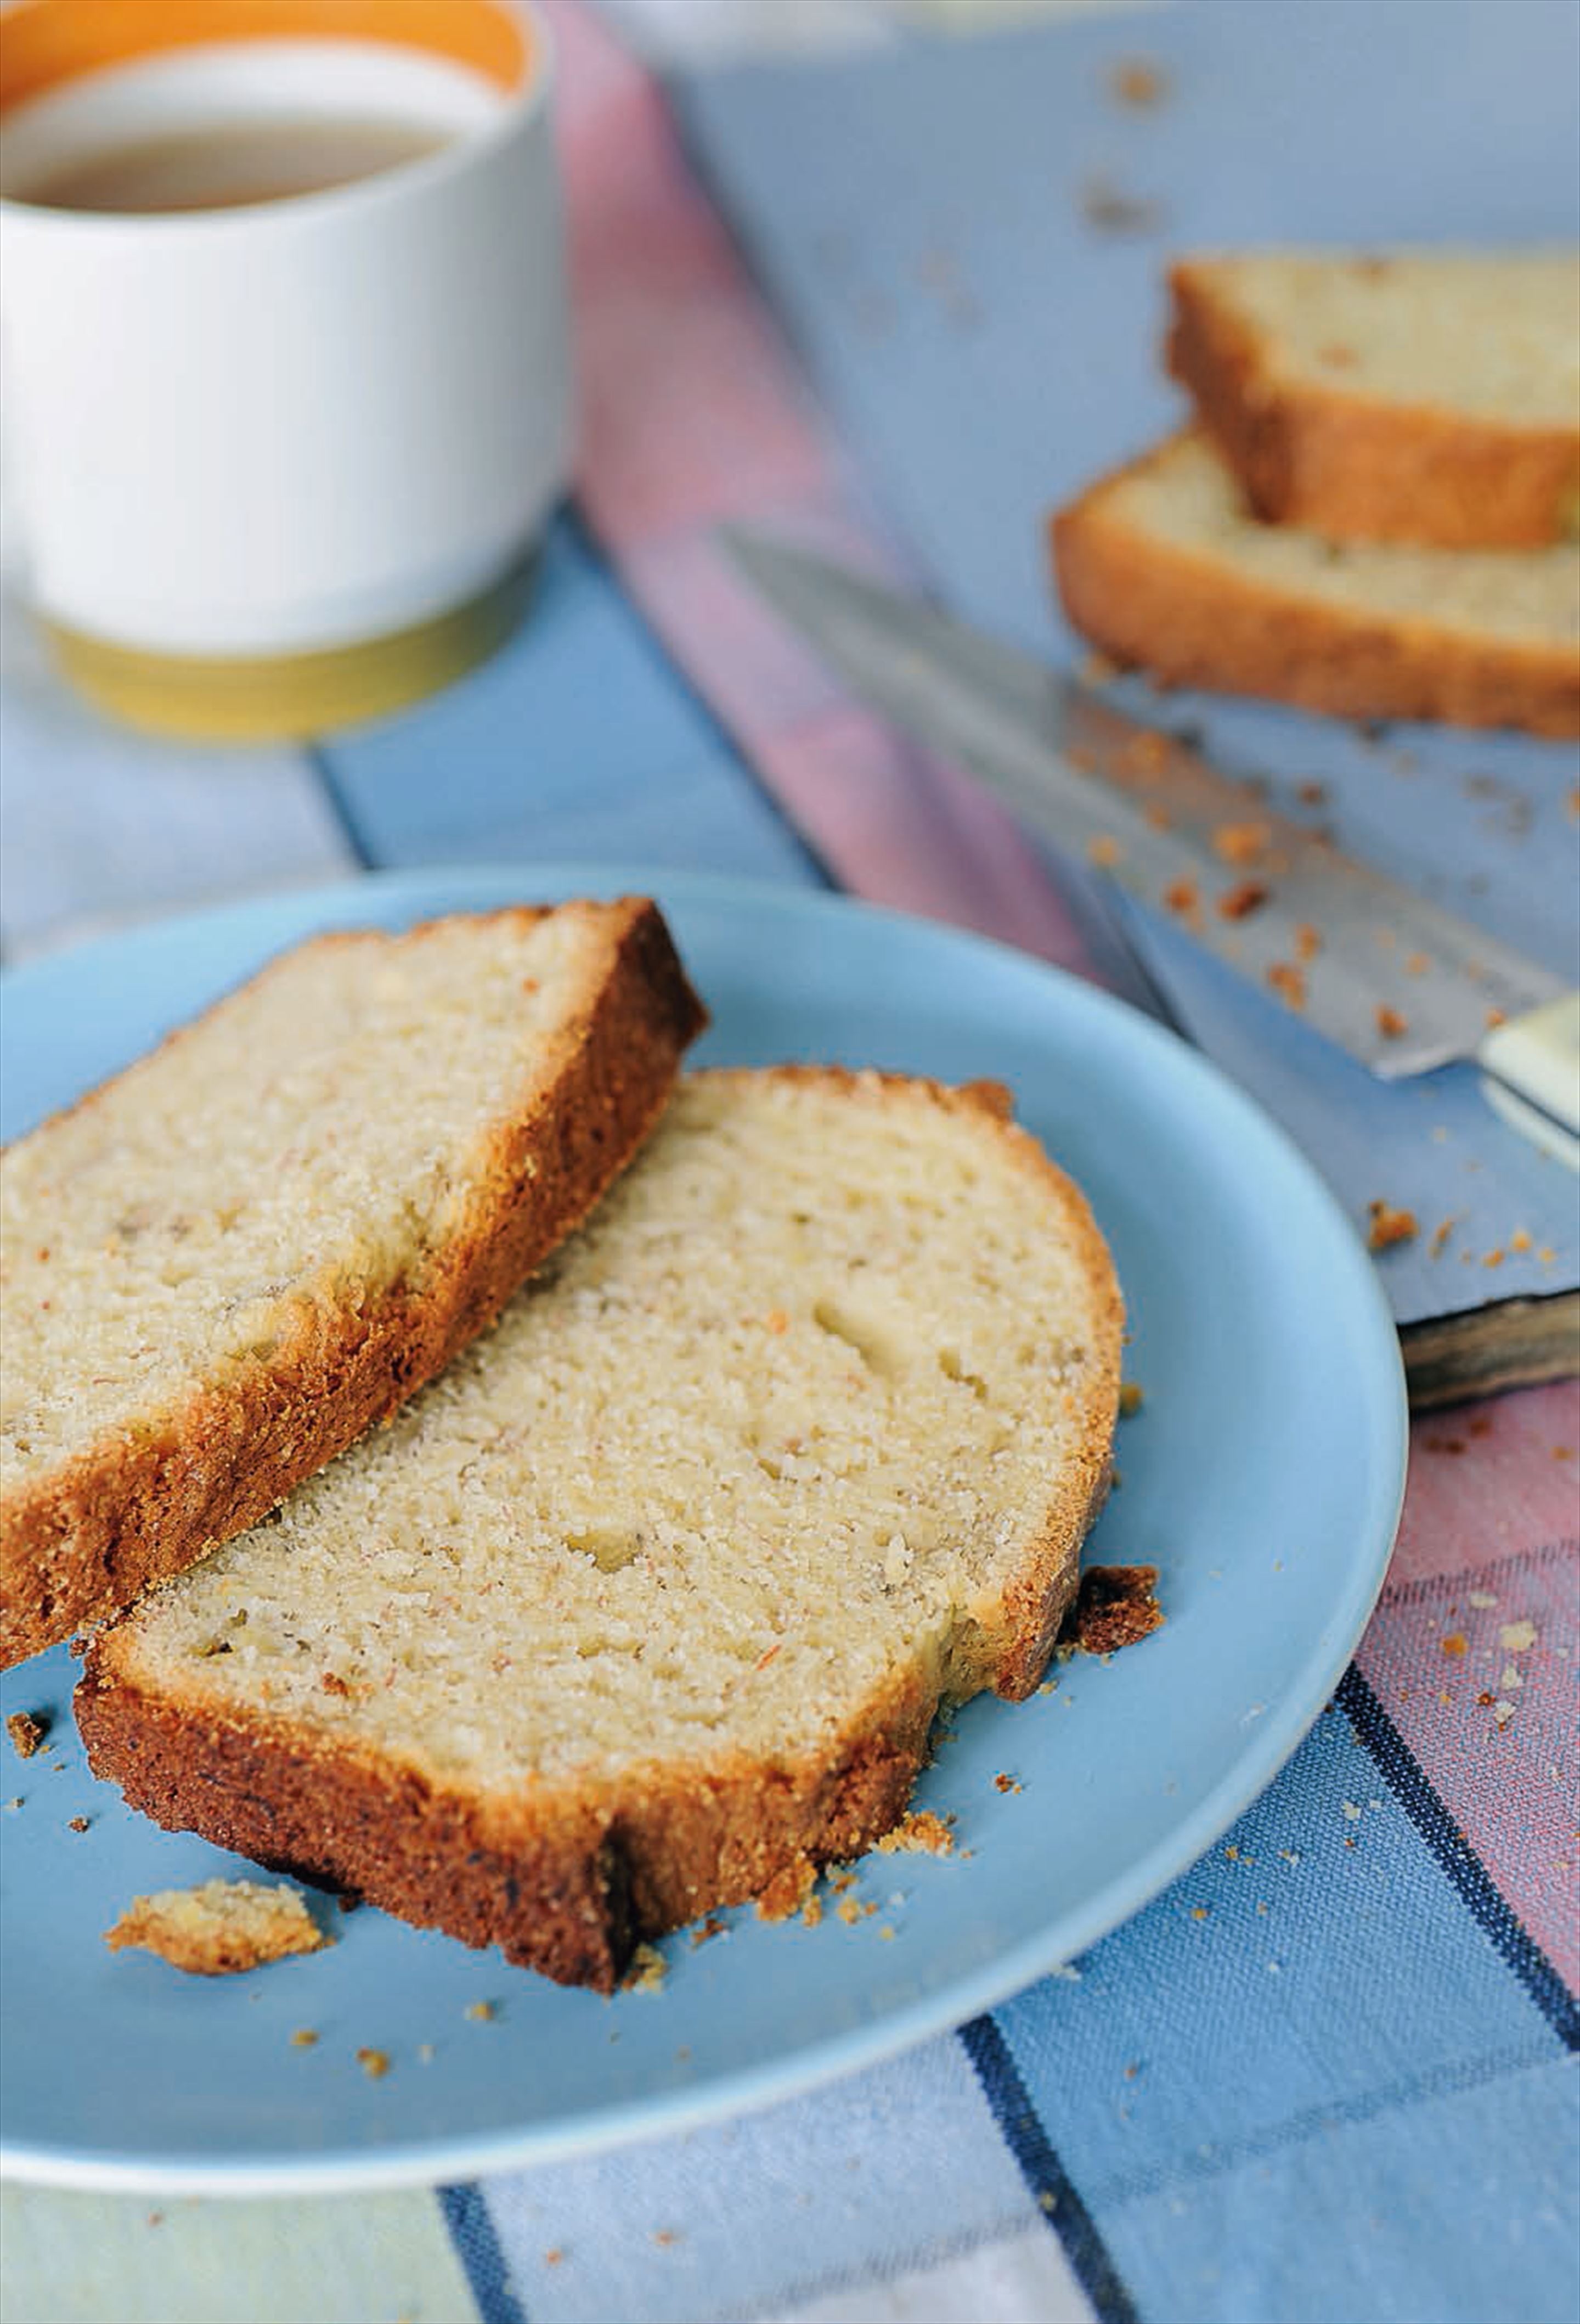 Standing-on-your-head banana bread